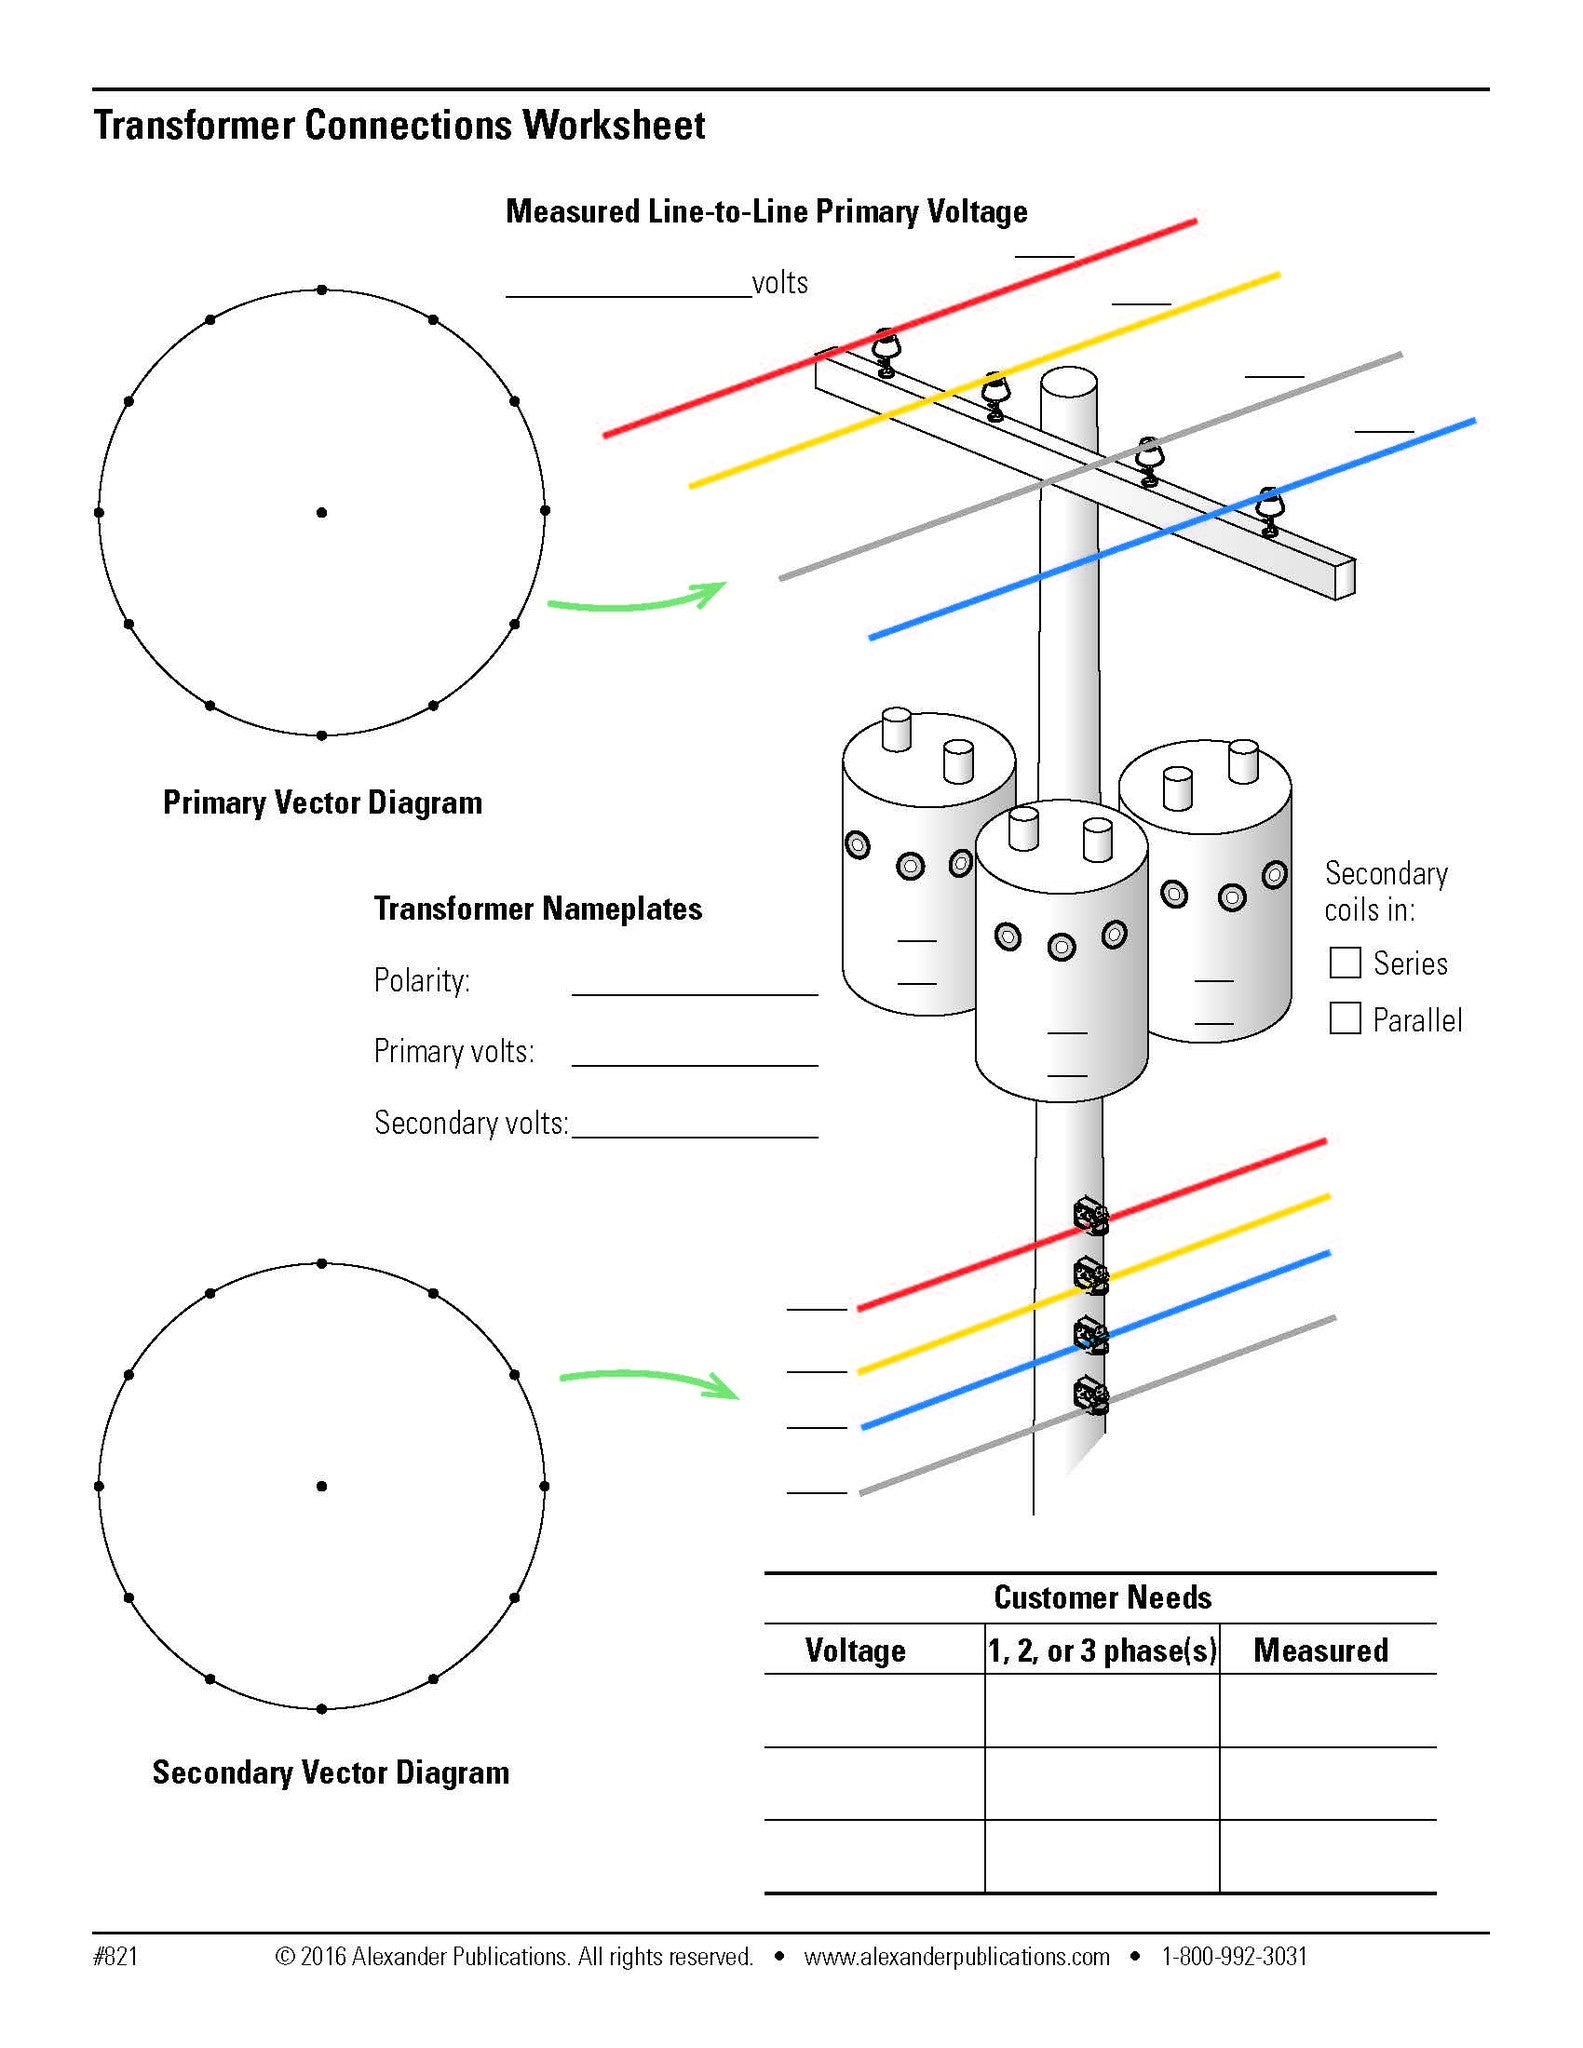 Transformer Connections Worksheets on wiring diagrams for transformers